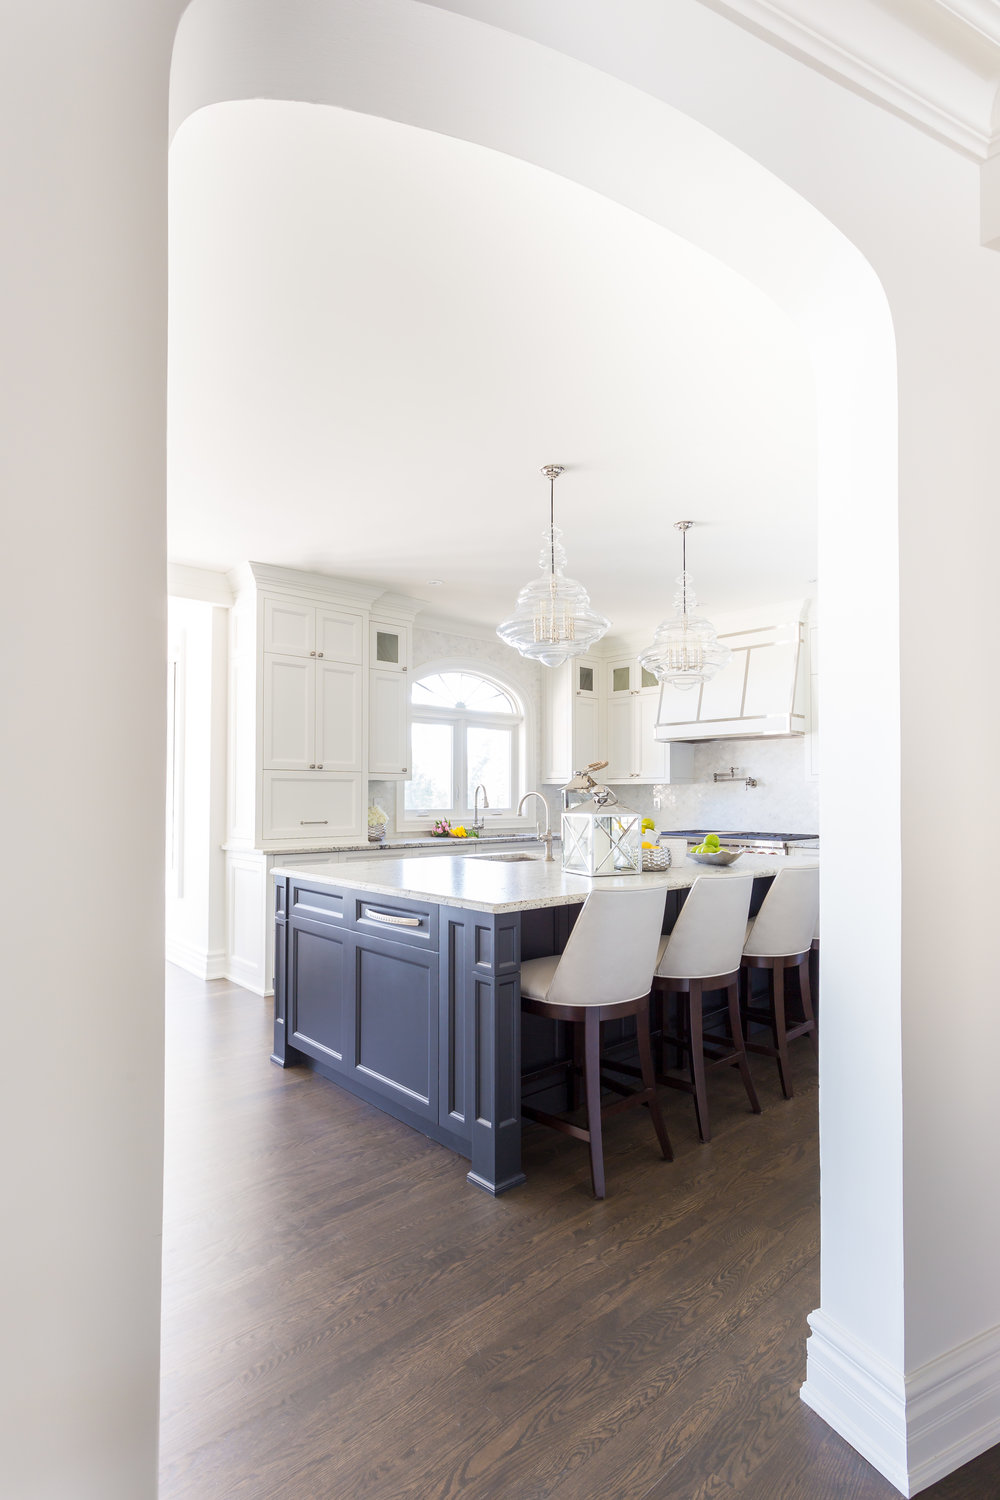 oakville-interior design-kitchen-custom-island-robson hallford